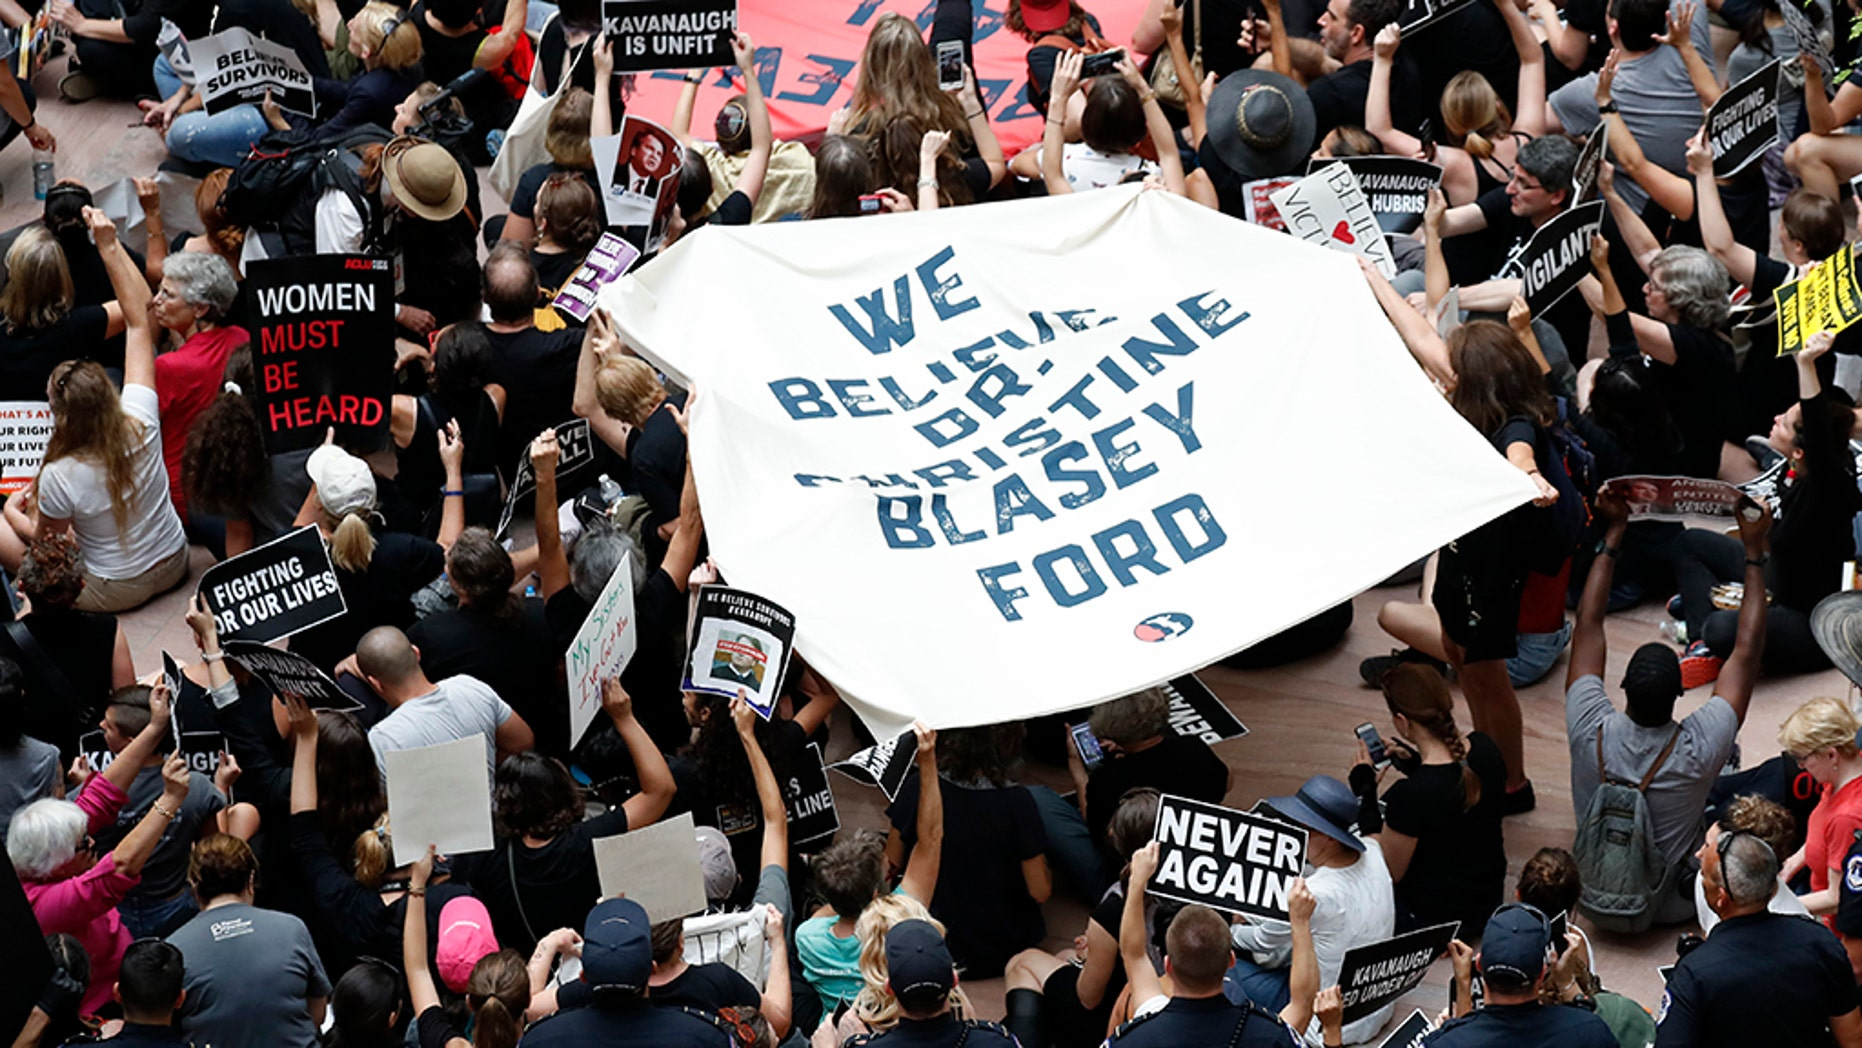 Protesters demonstrate on Capitol Hill against the nomination of Brett Kavanaugh to the Supreme Court.